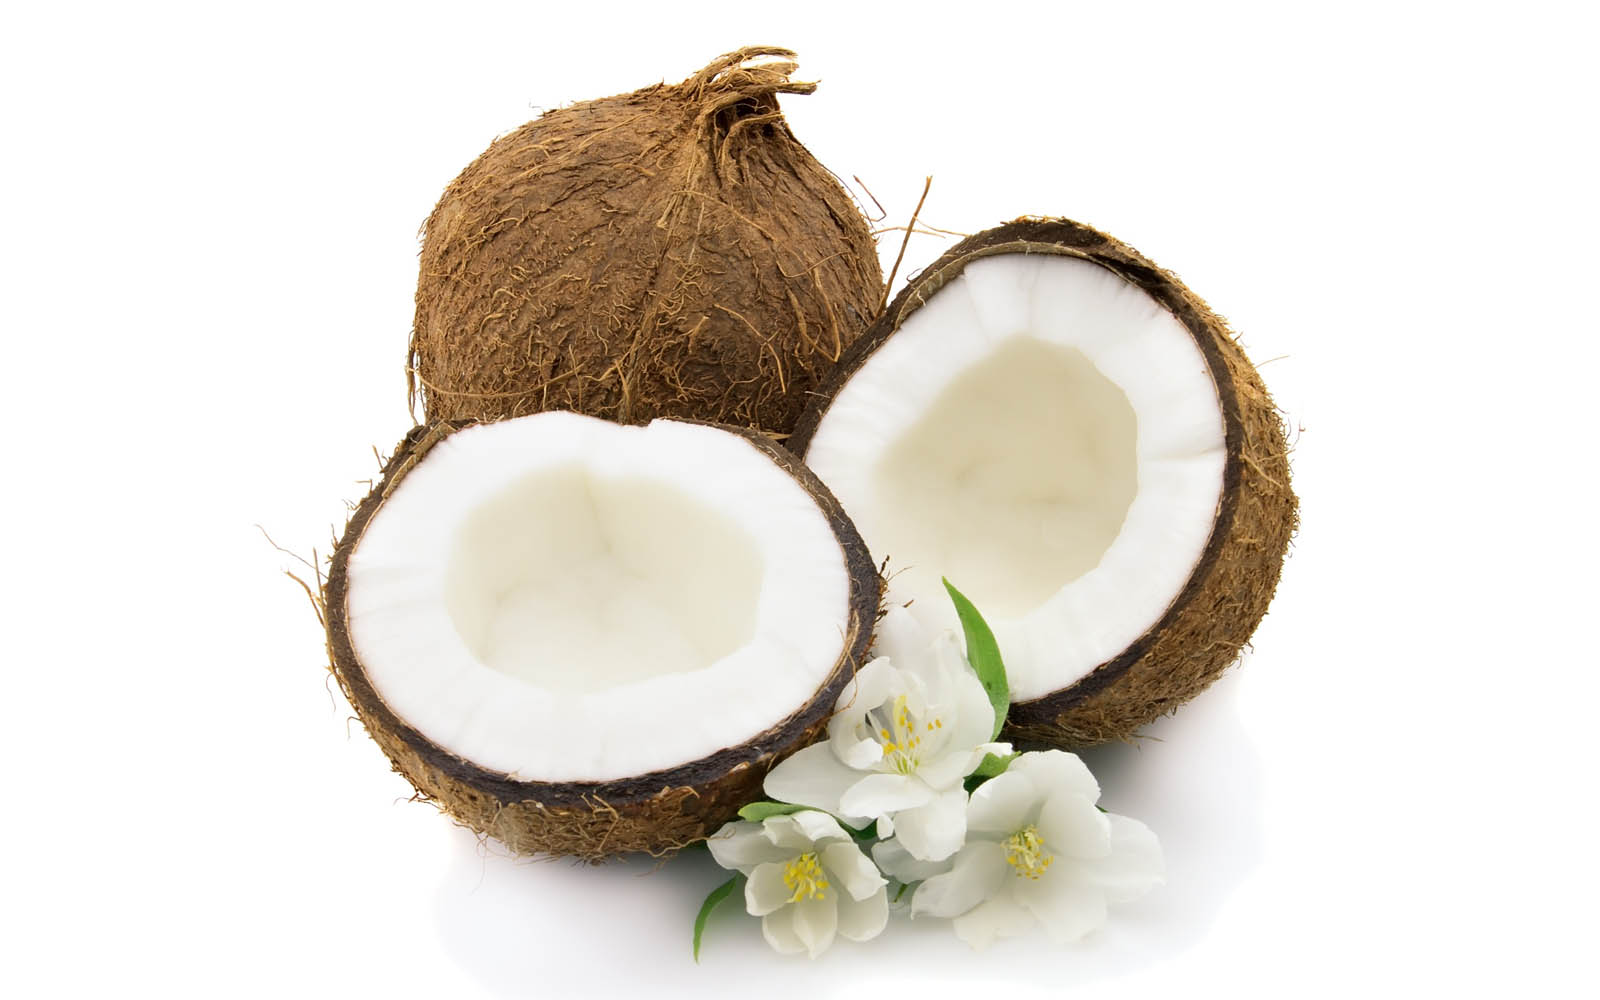 wallpapers: Coconut Wallpapers